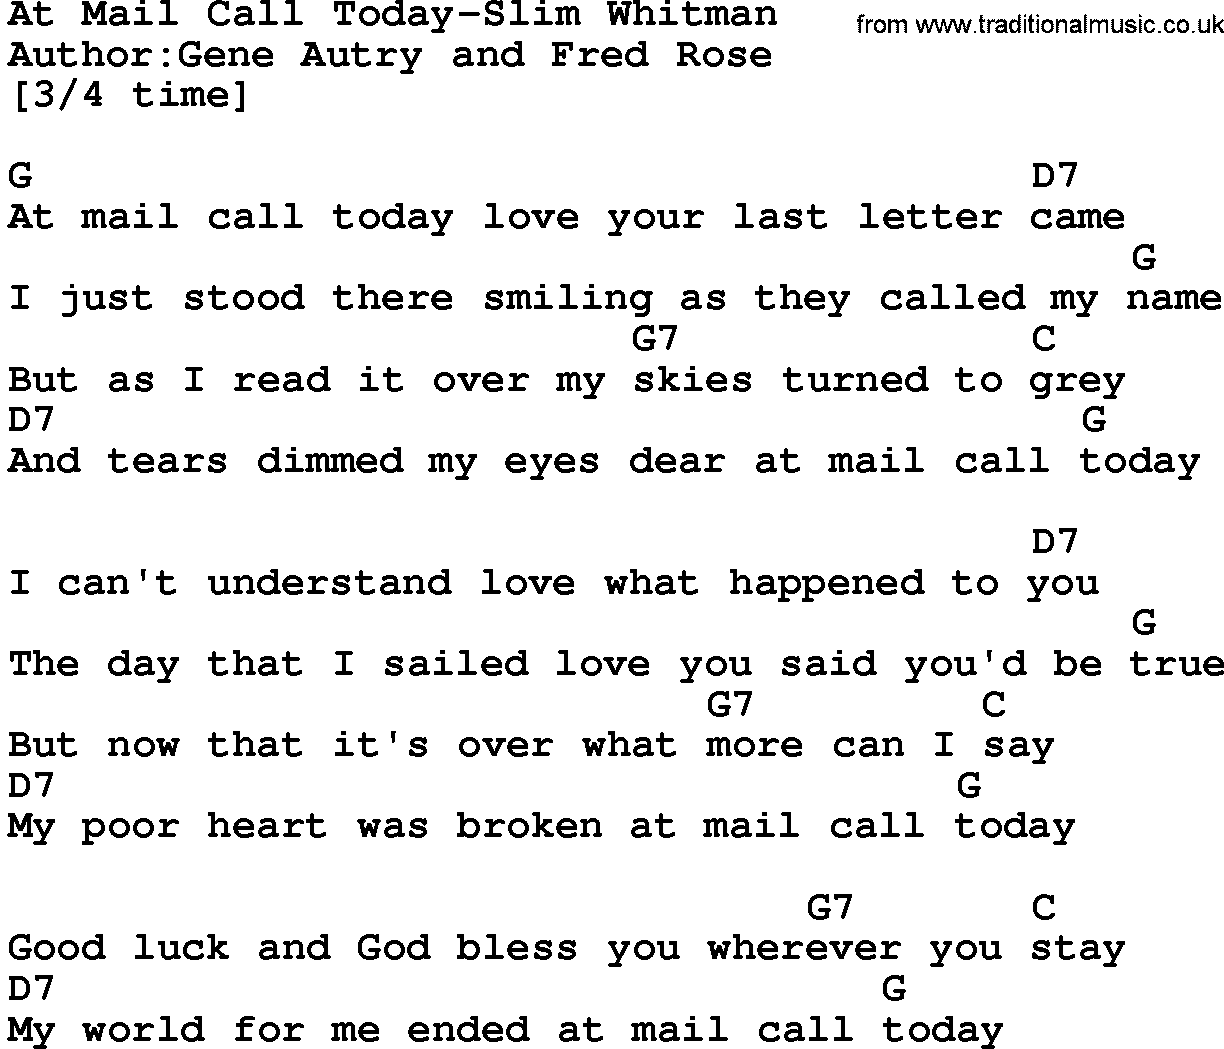 Country music at mail call today slim whitman lyrics and chords - Theusd house built in six weeks a young mans gut check ...